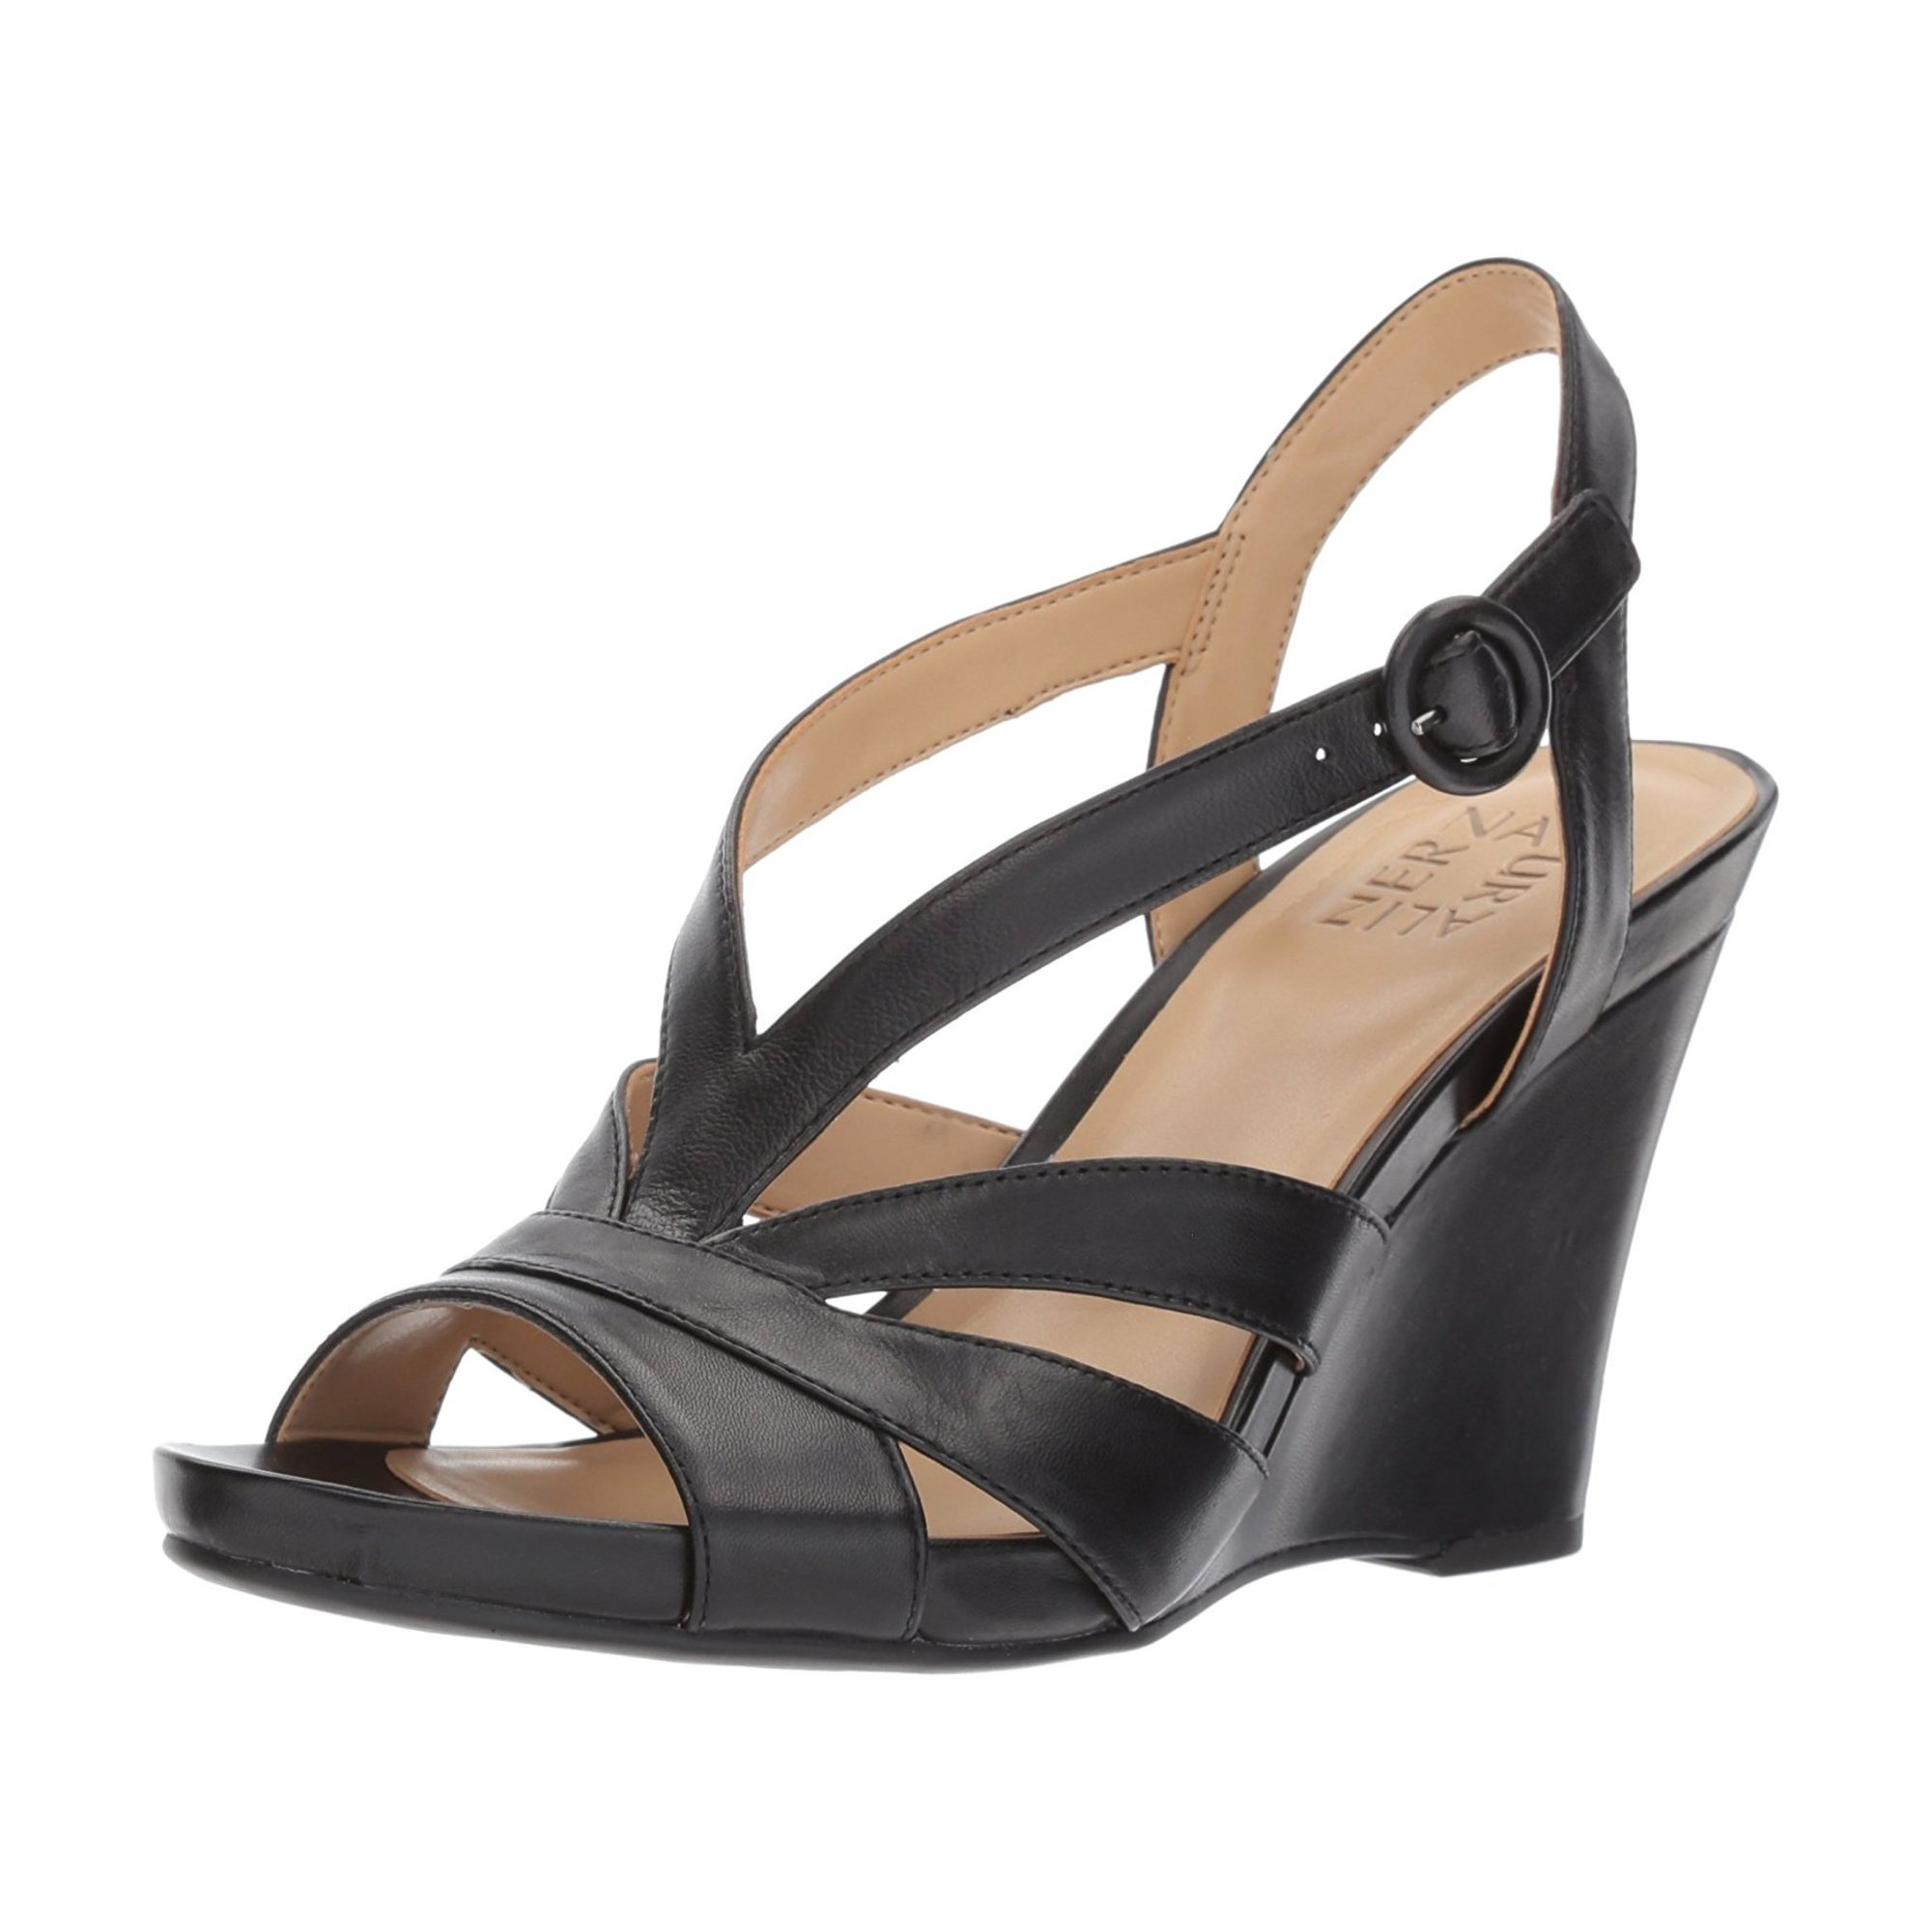 5fdeb0844b95 Naturalizer Women s Brandy Wedge Sandal